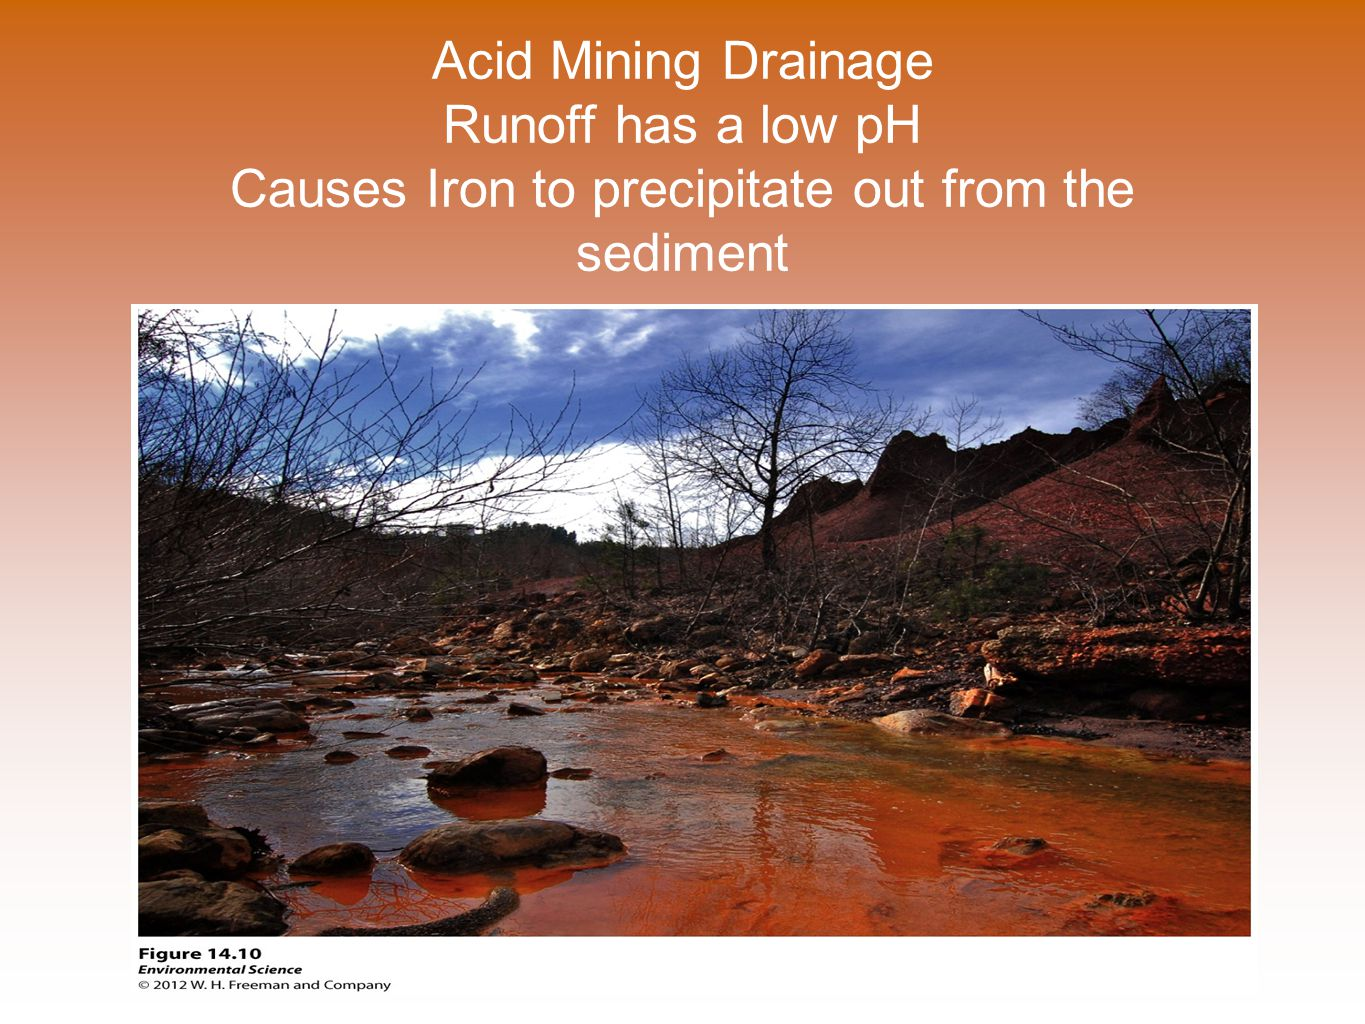 Acid Mining Drainage Runoff has a low pH Causes Iron to precipitate out from the sediment